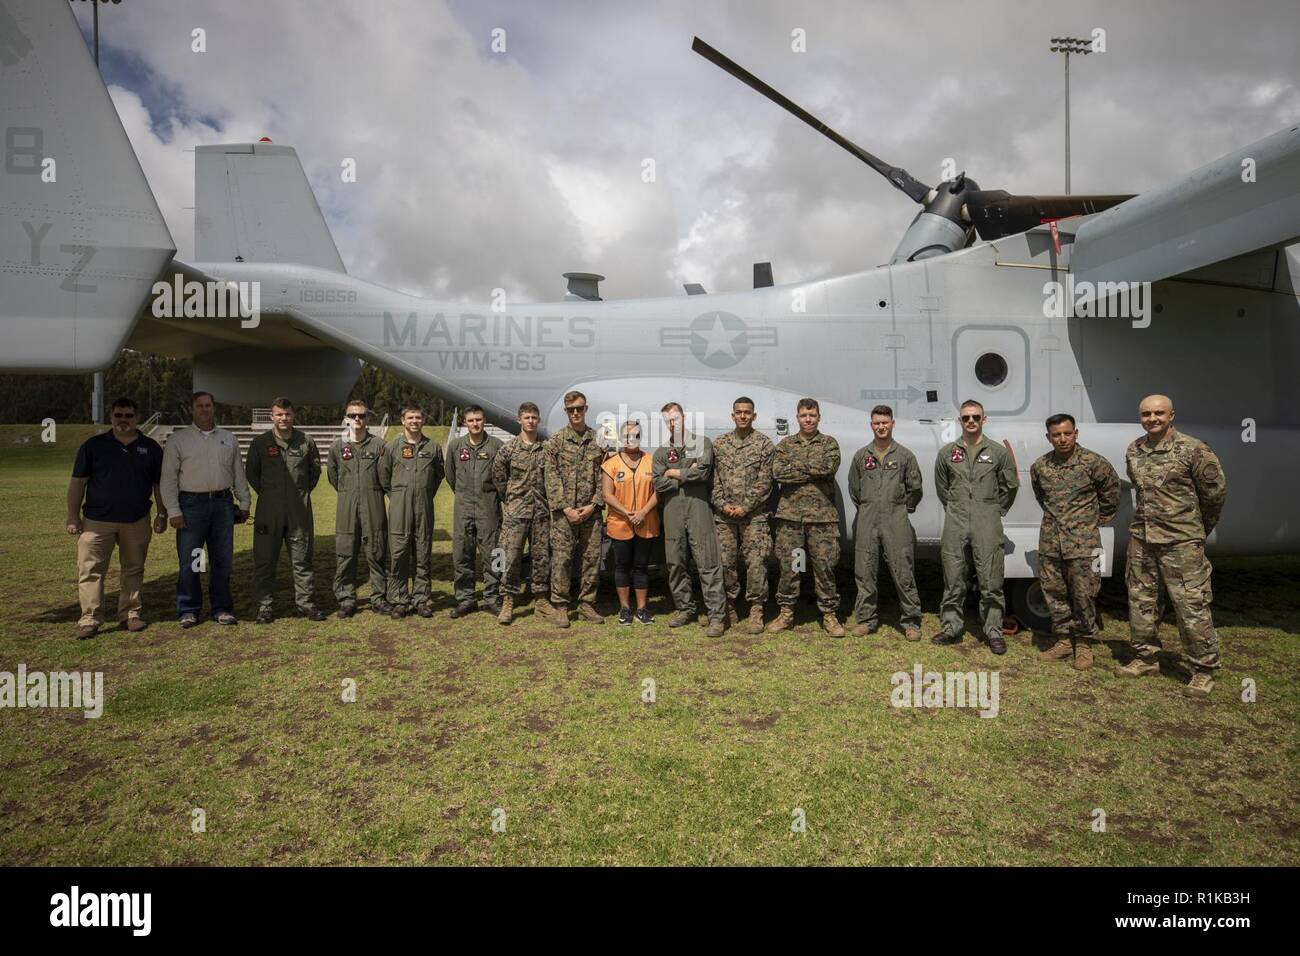 U.S. Marines with Marine Medium Tiltrotor Squadron (VMM) 363, pose for a photo with Pohakuloa Training Area military leaders and community spectators in front of a MV-22B Osprey at the Waimea District Park, Oct. 12, 2018. VMM-363, nicknamed the Lucky Red Lions, flew one of their aircraft from Marine Corps Base Hawaii on Oahu to the Waimea Fall Festival, providing a static display and subject matter experts for a first-hand experience to the festival's attendants. The squadron arrived to Hawaii earlier this year increasing the combat capability and crisis response within the Indo-Pacific region Stock Photo